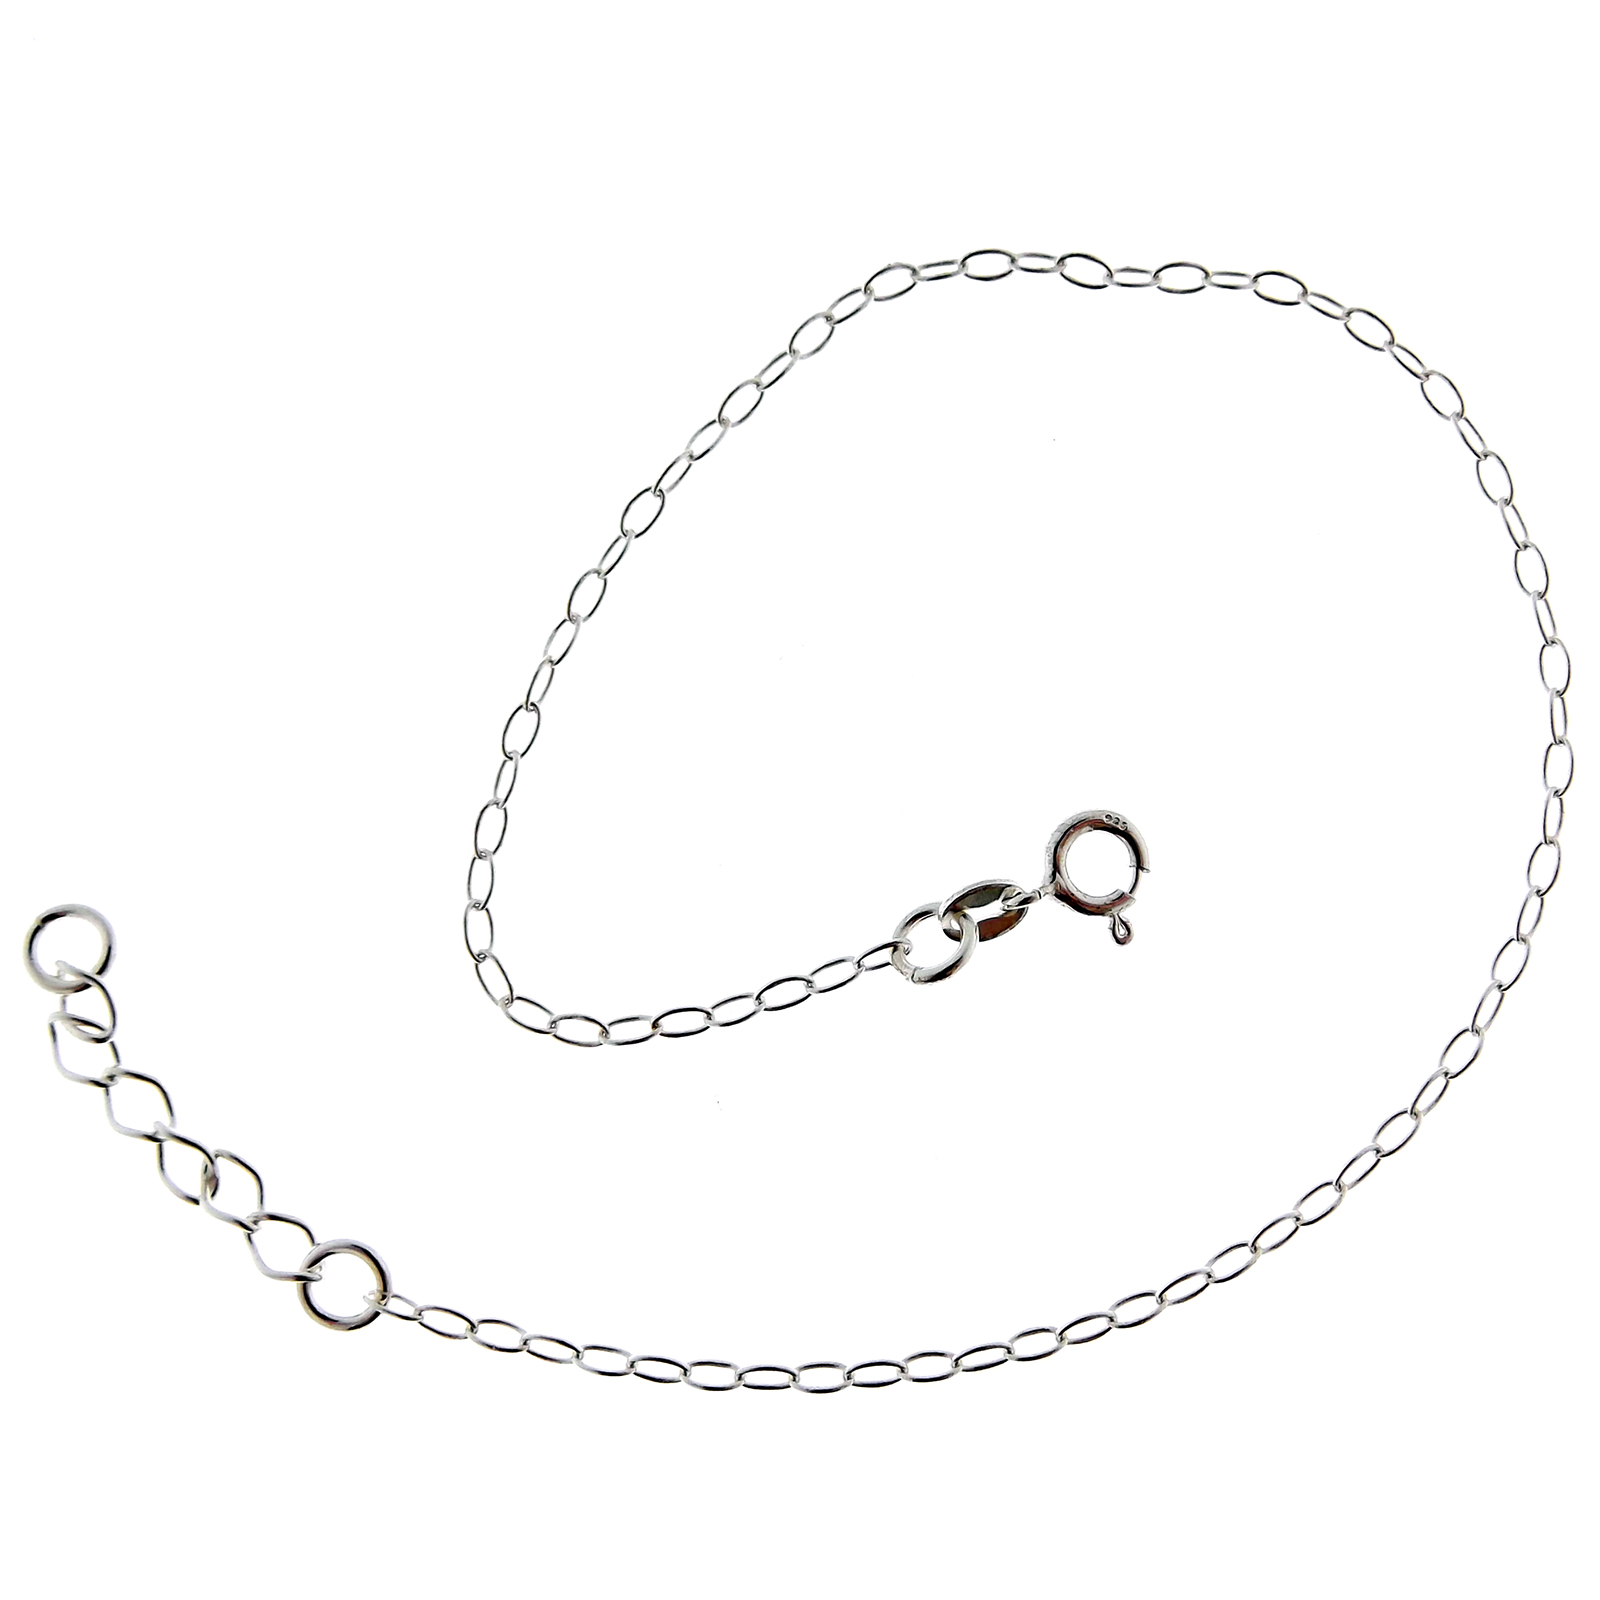 c gold n i you qvc l moon to bracelet anklet com white back ankle love the g chain jewelry bracelets